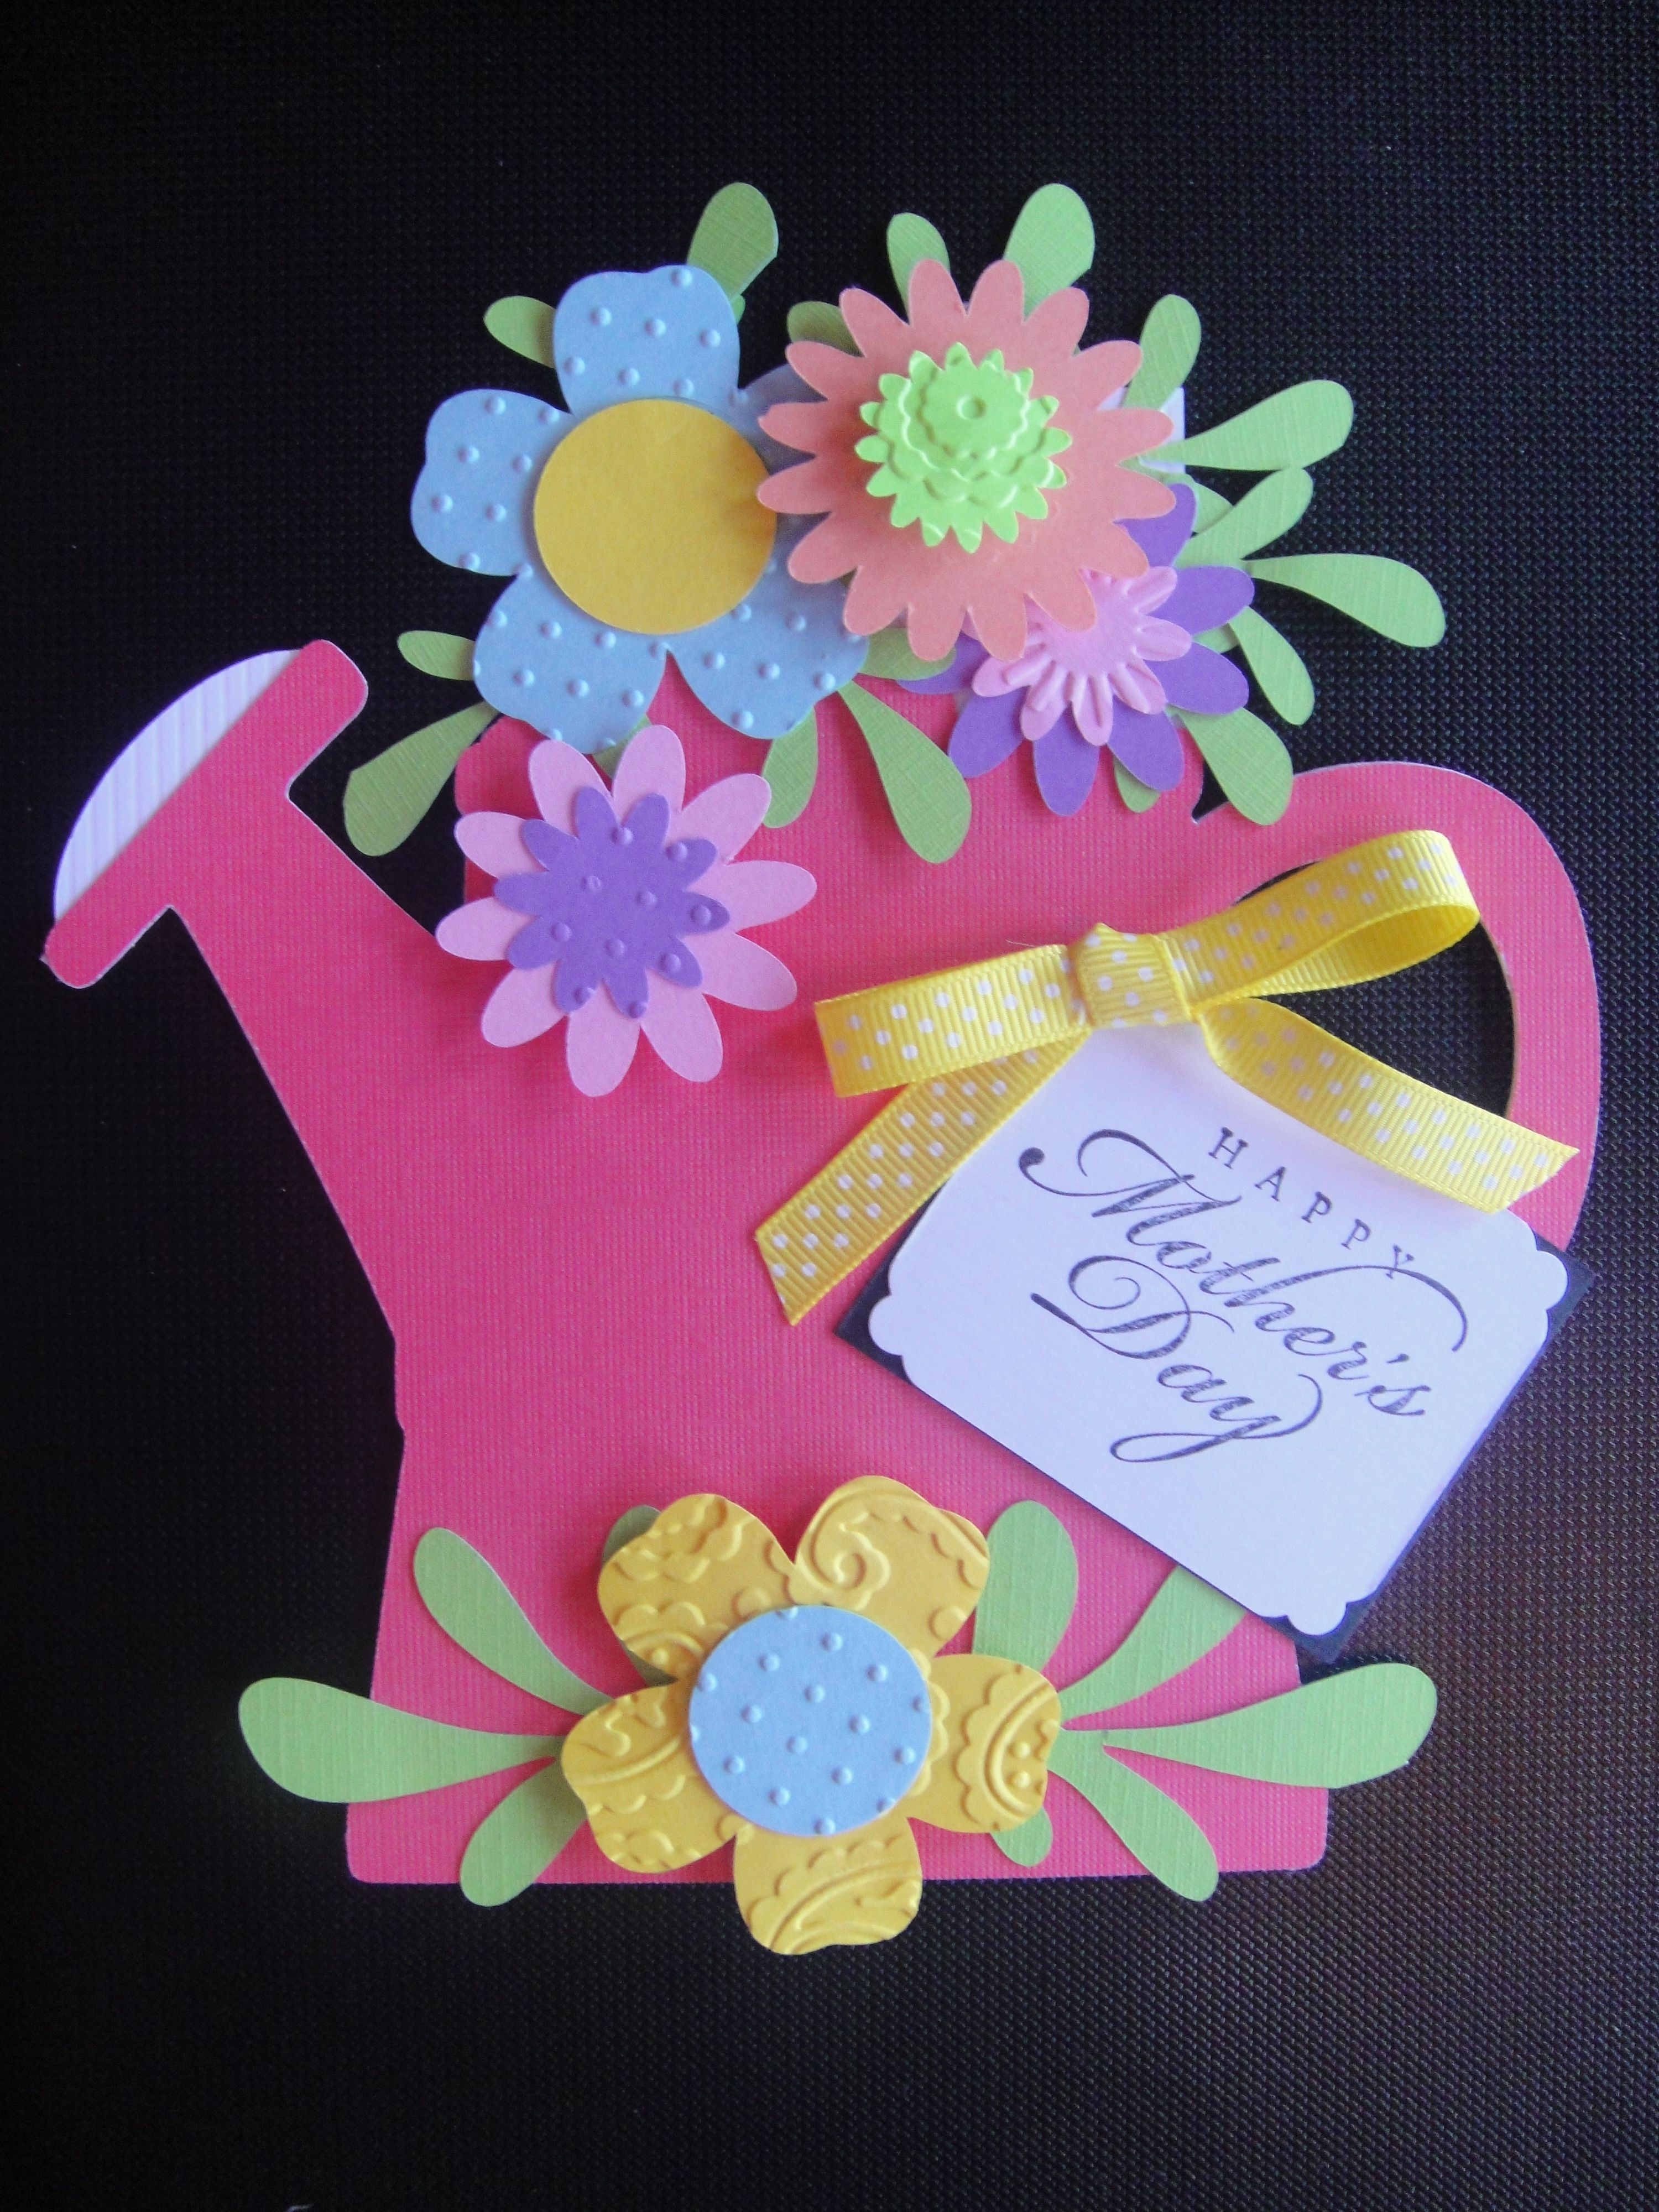 Motherus day card with pull out top to insert gift card class art